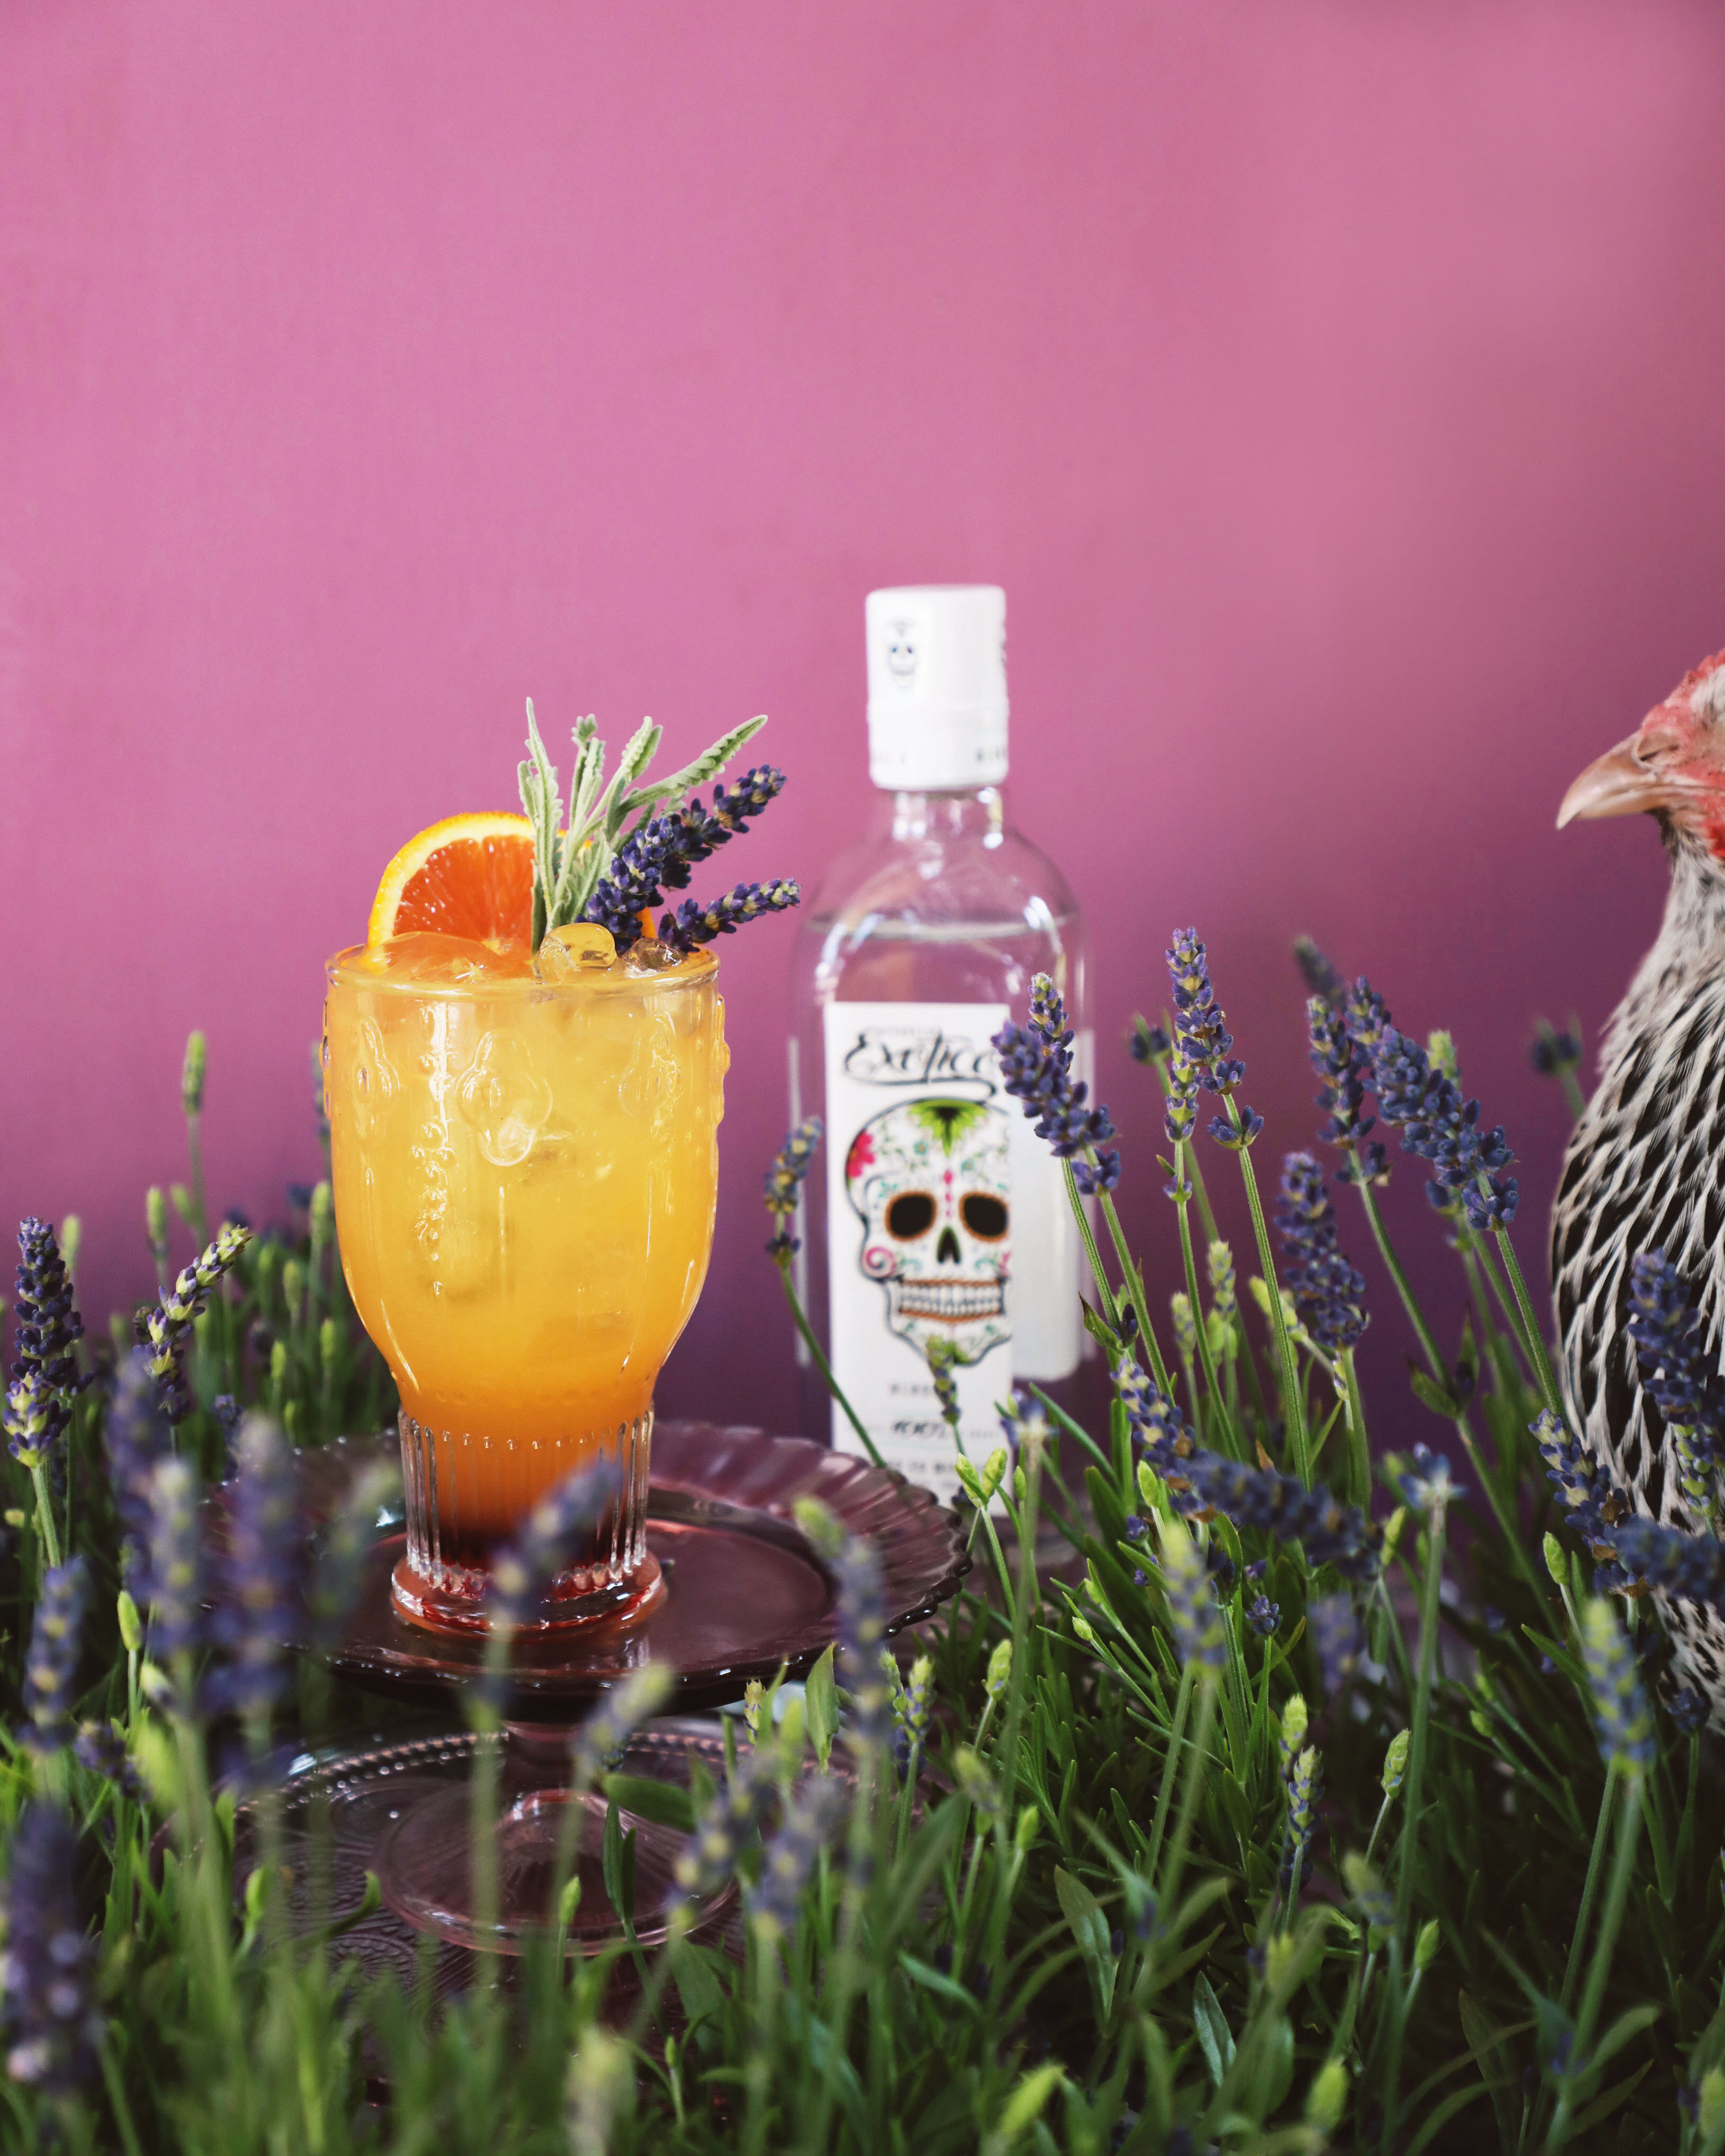 Lavender Tequila Sunrise made with Exotico Tequila Blanco, fresh orange juice, and lavender-infused grenadine | drinkingwithchickens.com